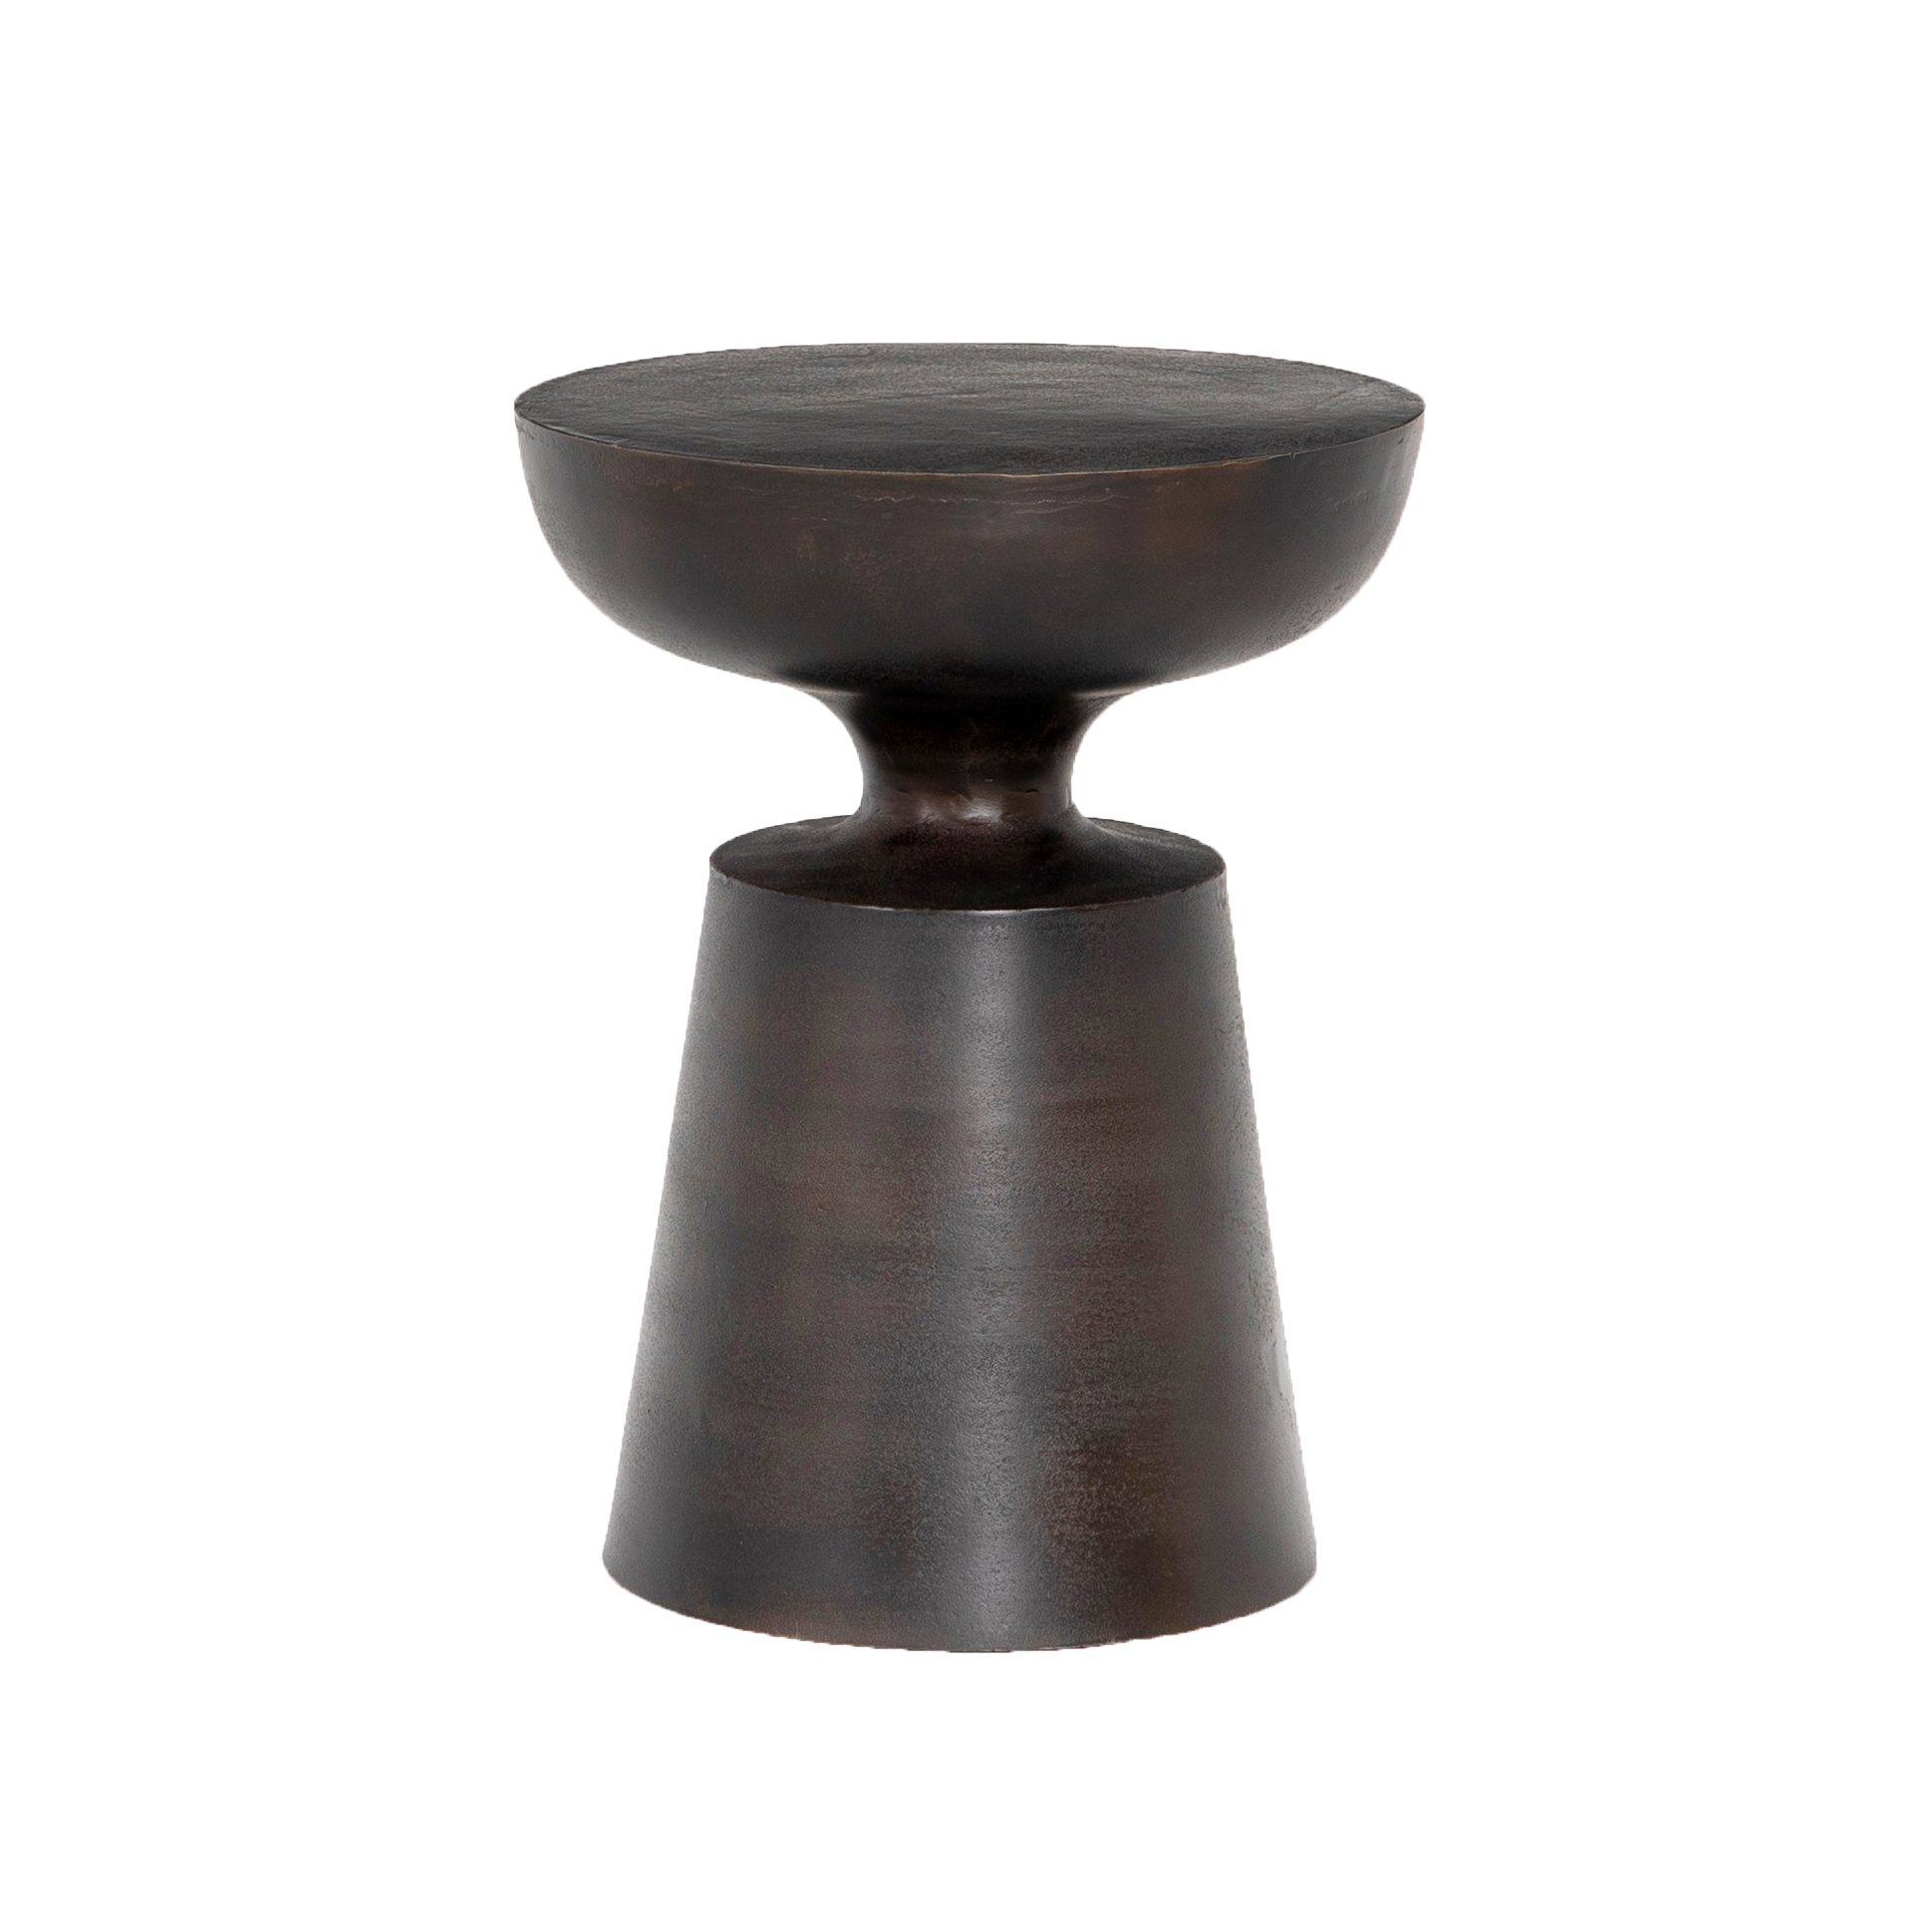 Cruz End Table |   Unique in every way, this table makes for a playful pedestal and can be used indoors or outdoors. Cover this table during cases of inclement weather to protect its antique rust finish.